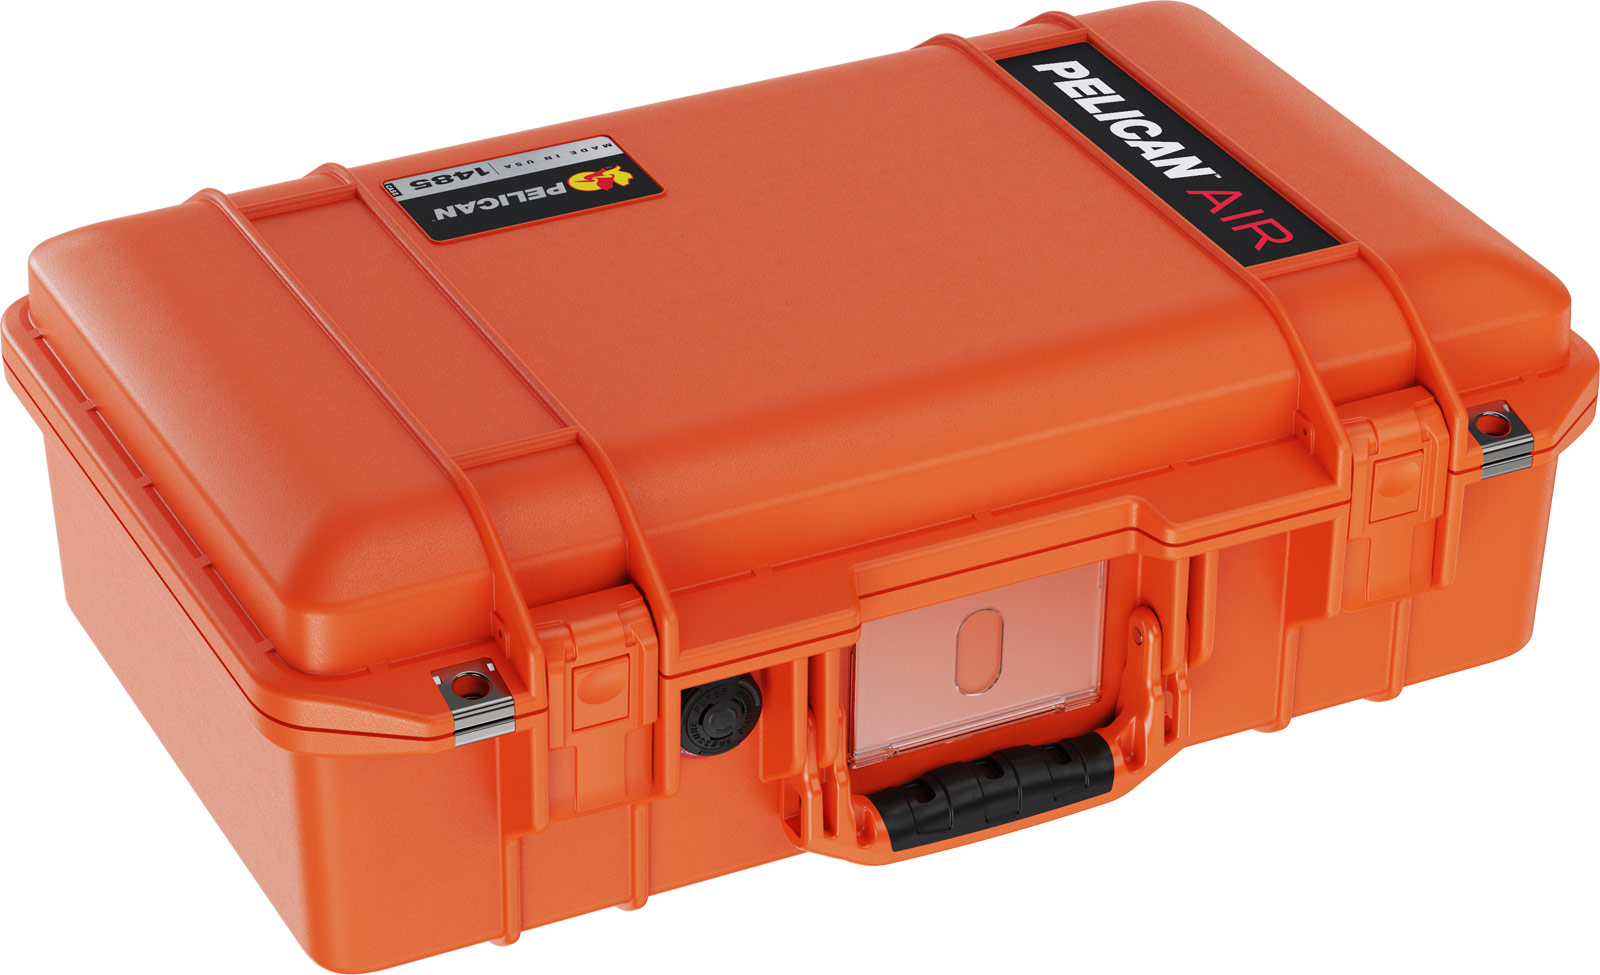 pelican orange air case 1485 camera case